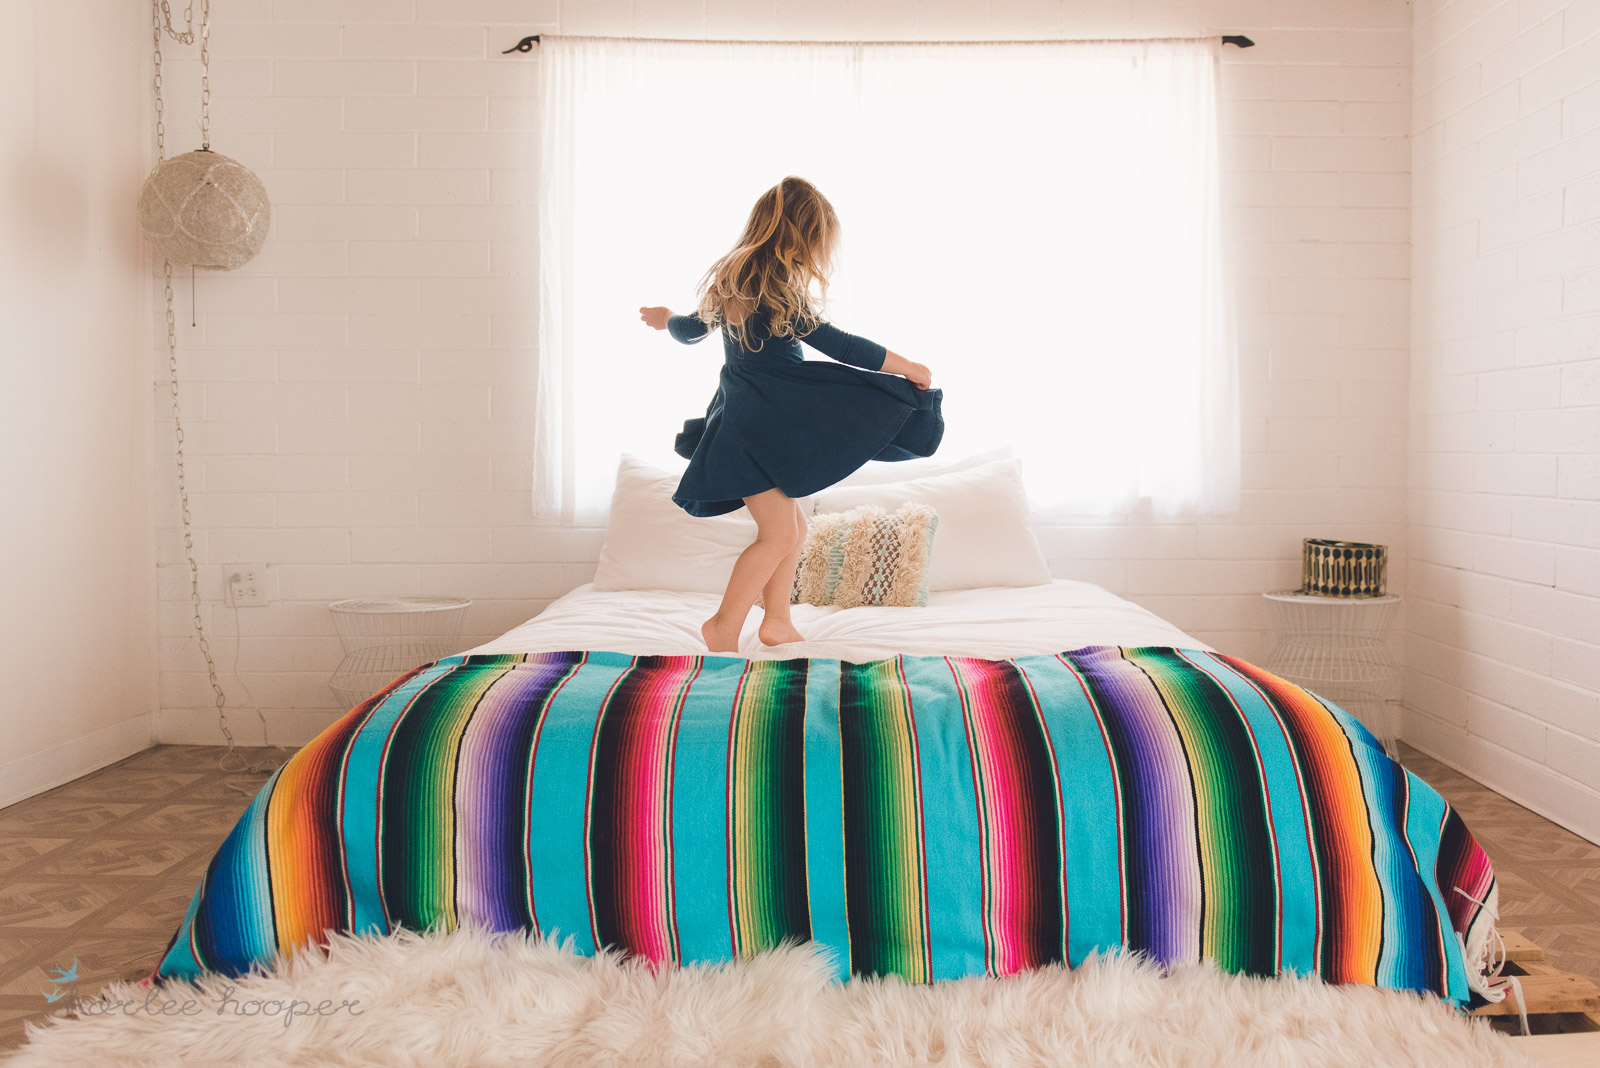 minimalist photo of a girl twirling on a bed in Alice and Ames dress by Karlee Hooper